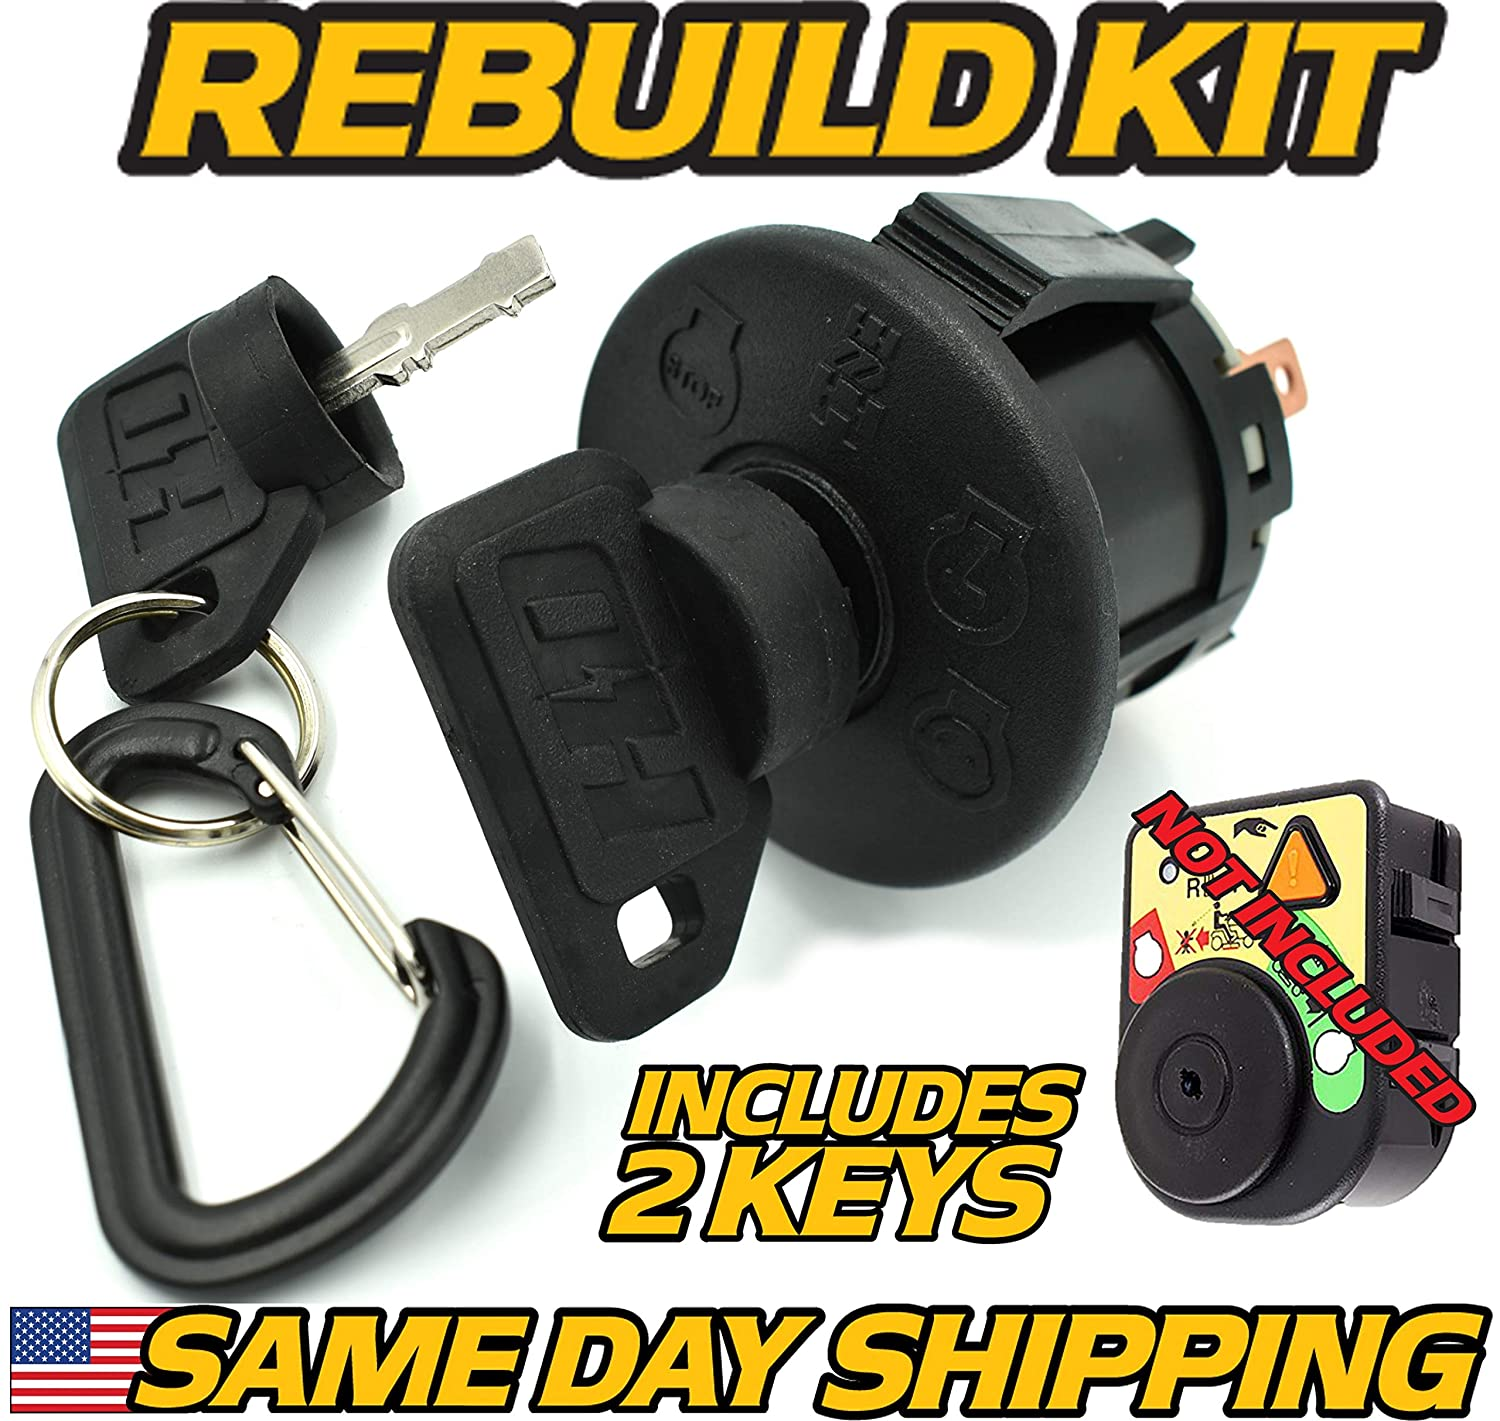 Craftsman, Sears, 193350, 532193350 Ignition Switch - OEM Upgrade W/ 2 Premium Keys & Free Carabiner Keychain - HD Switch